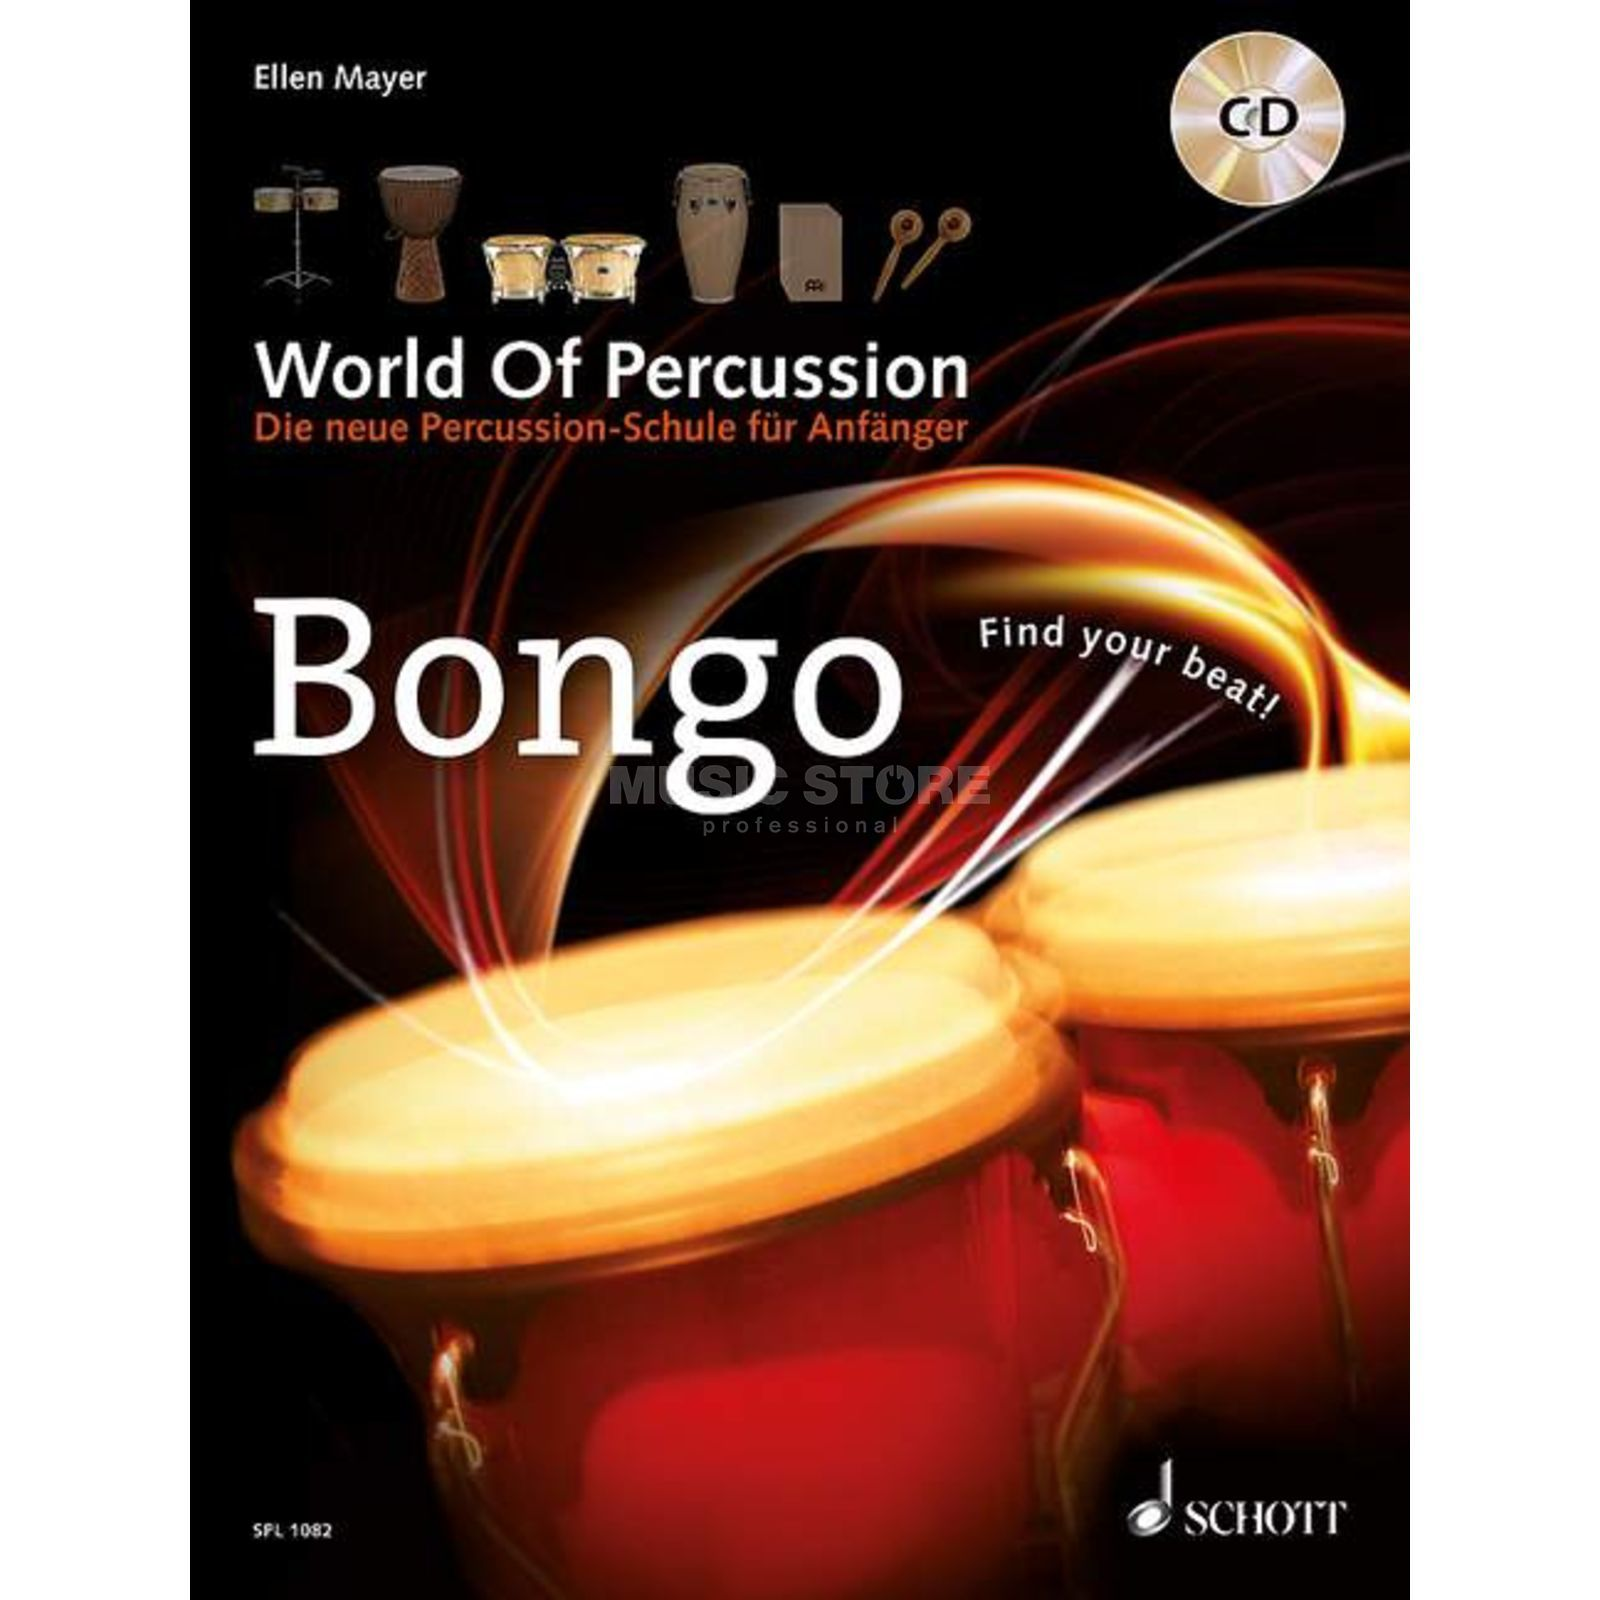 Schott-Verlag Bongo 2, World of Percussion Ellen Mayer Produktbild